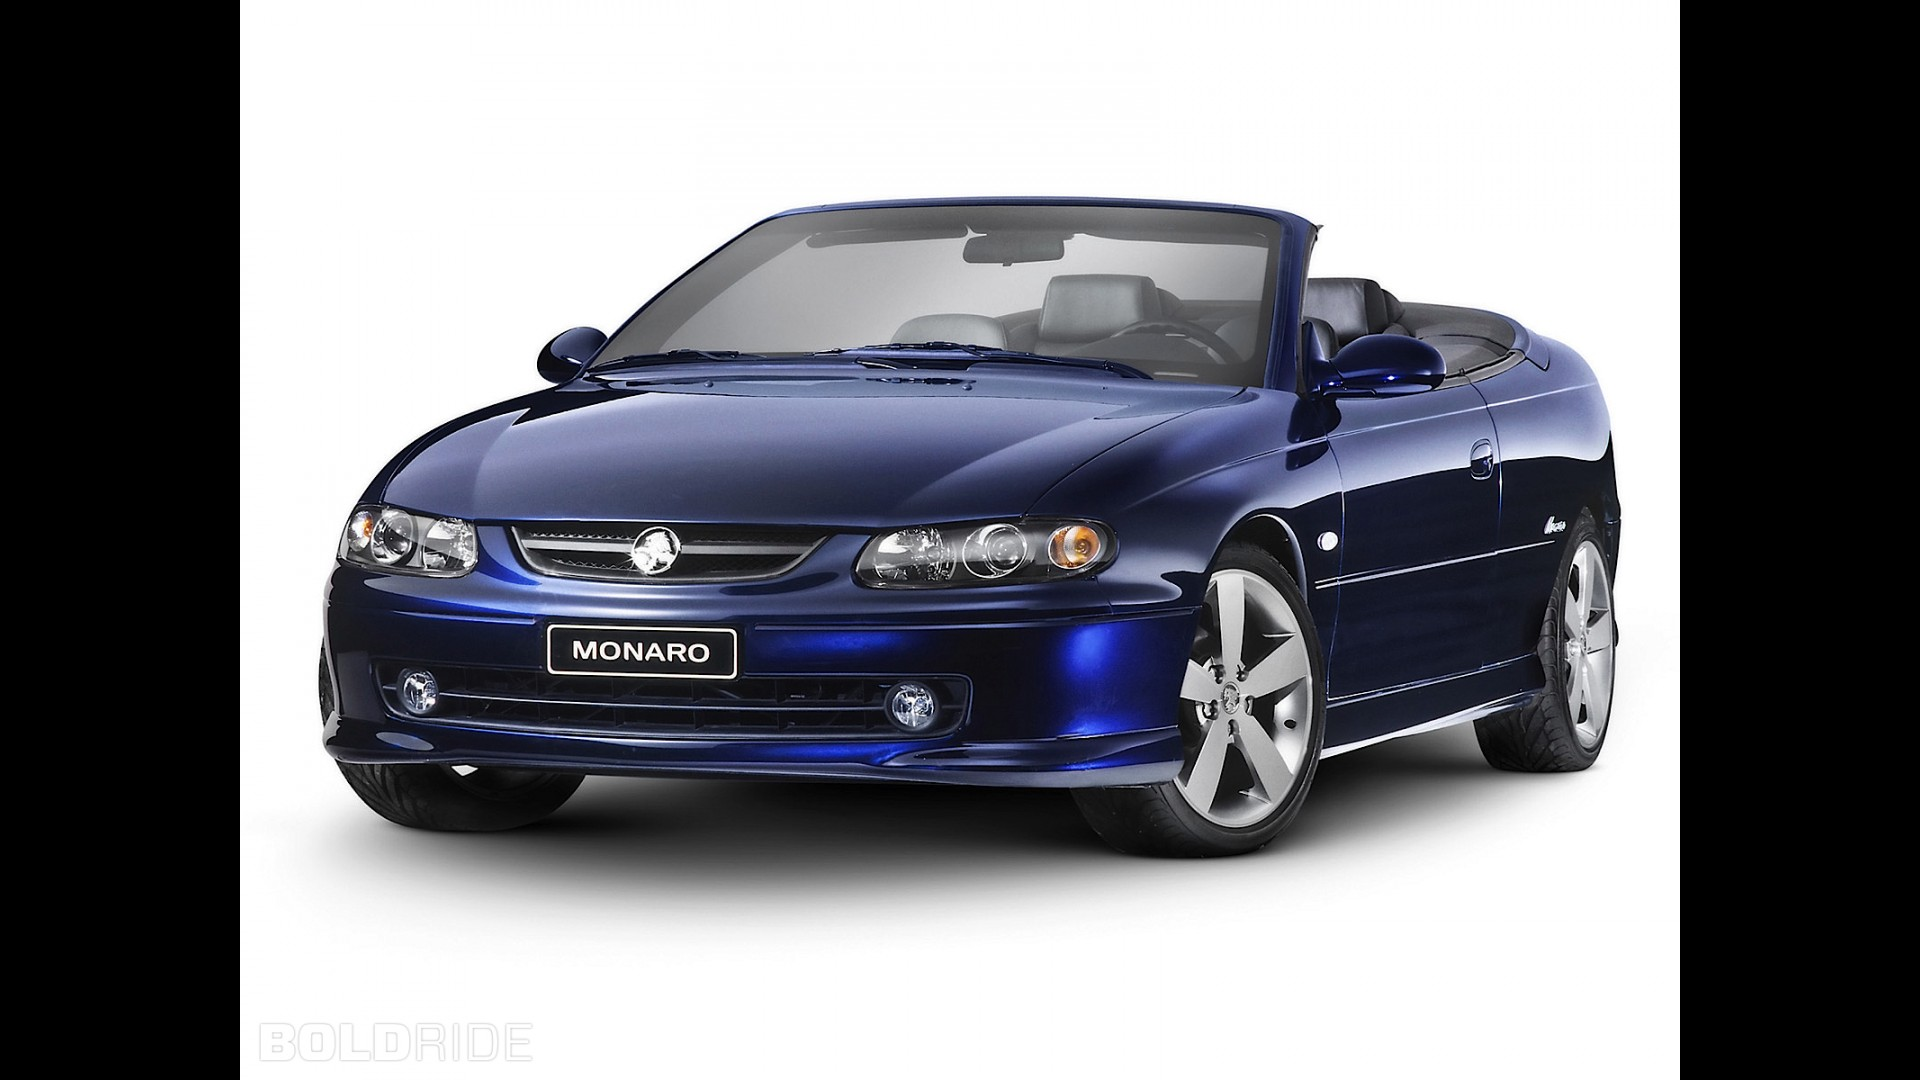 Holden monaro marilyn concept httpsmotor1news87251holden monaro marilyn concept general concept convertible coupe australia holden 2000 2009 vanachro Image collections